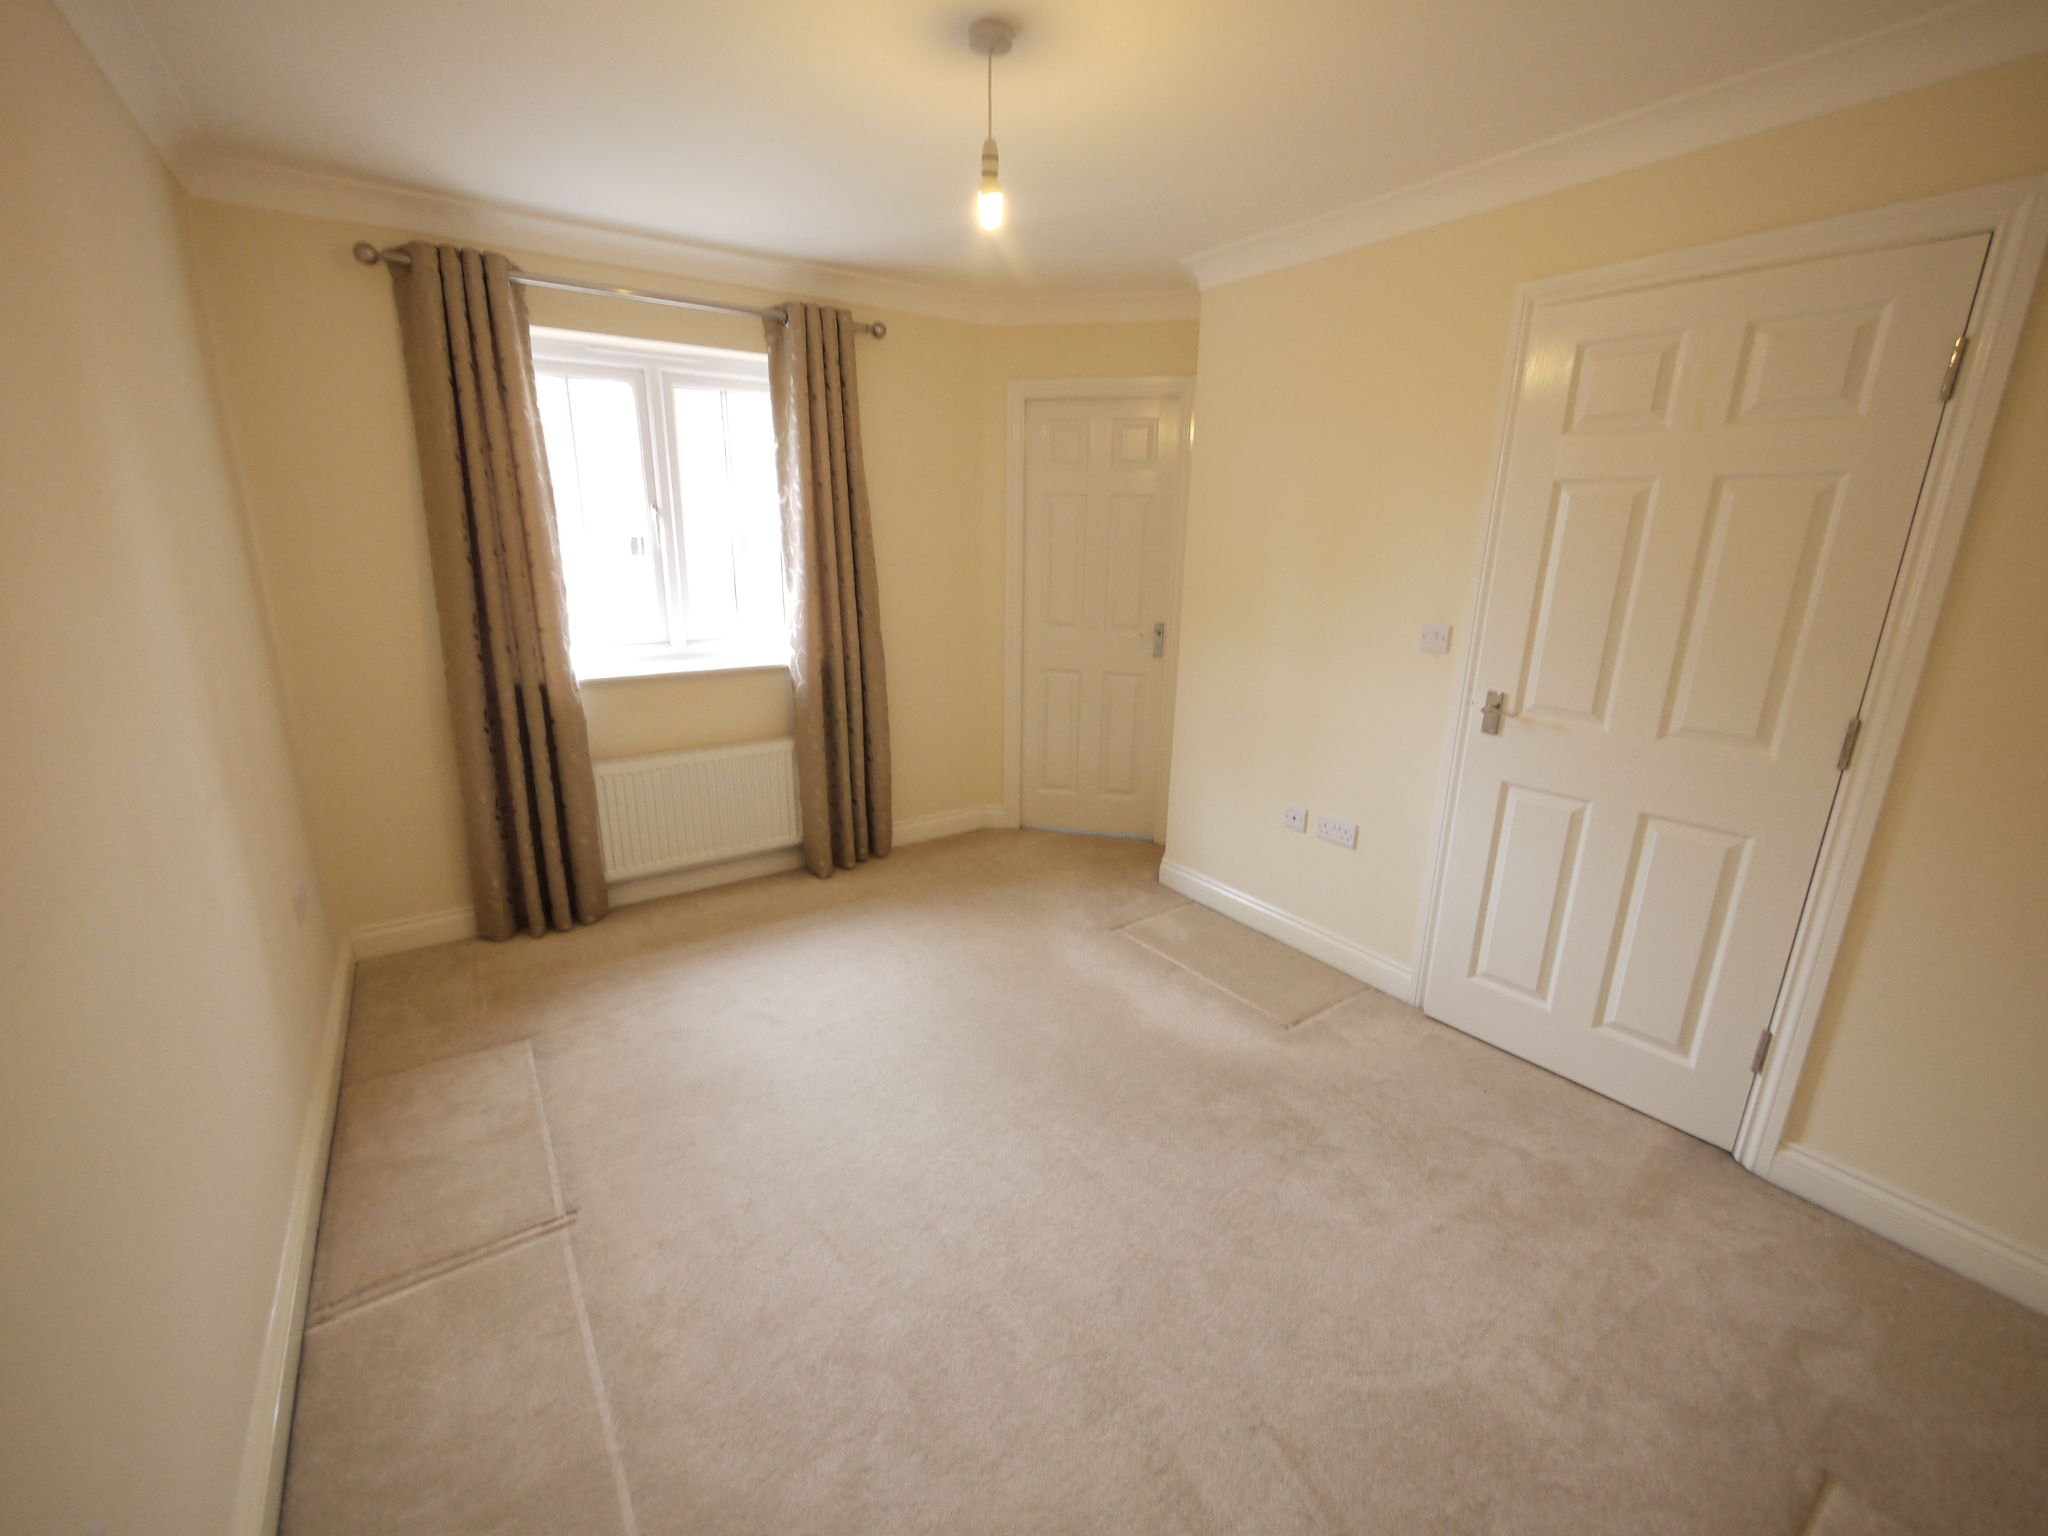 3 bedroom town house SSTC in Mirfield - Photograph 7.